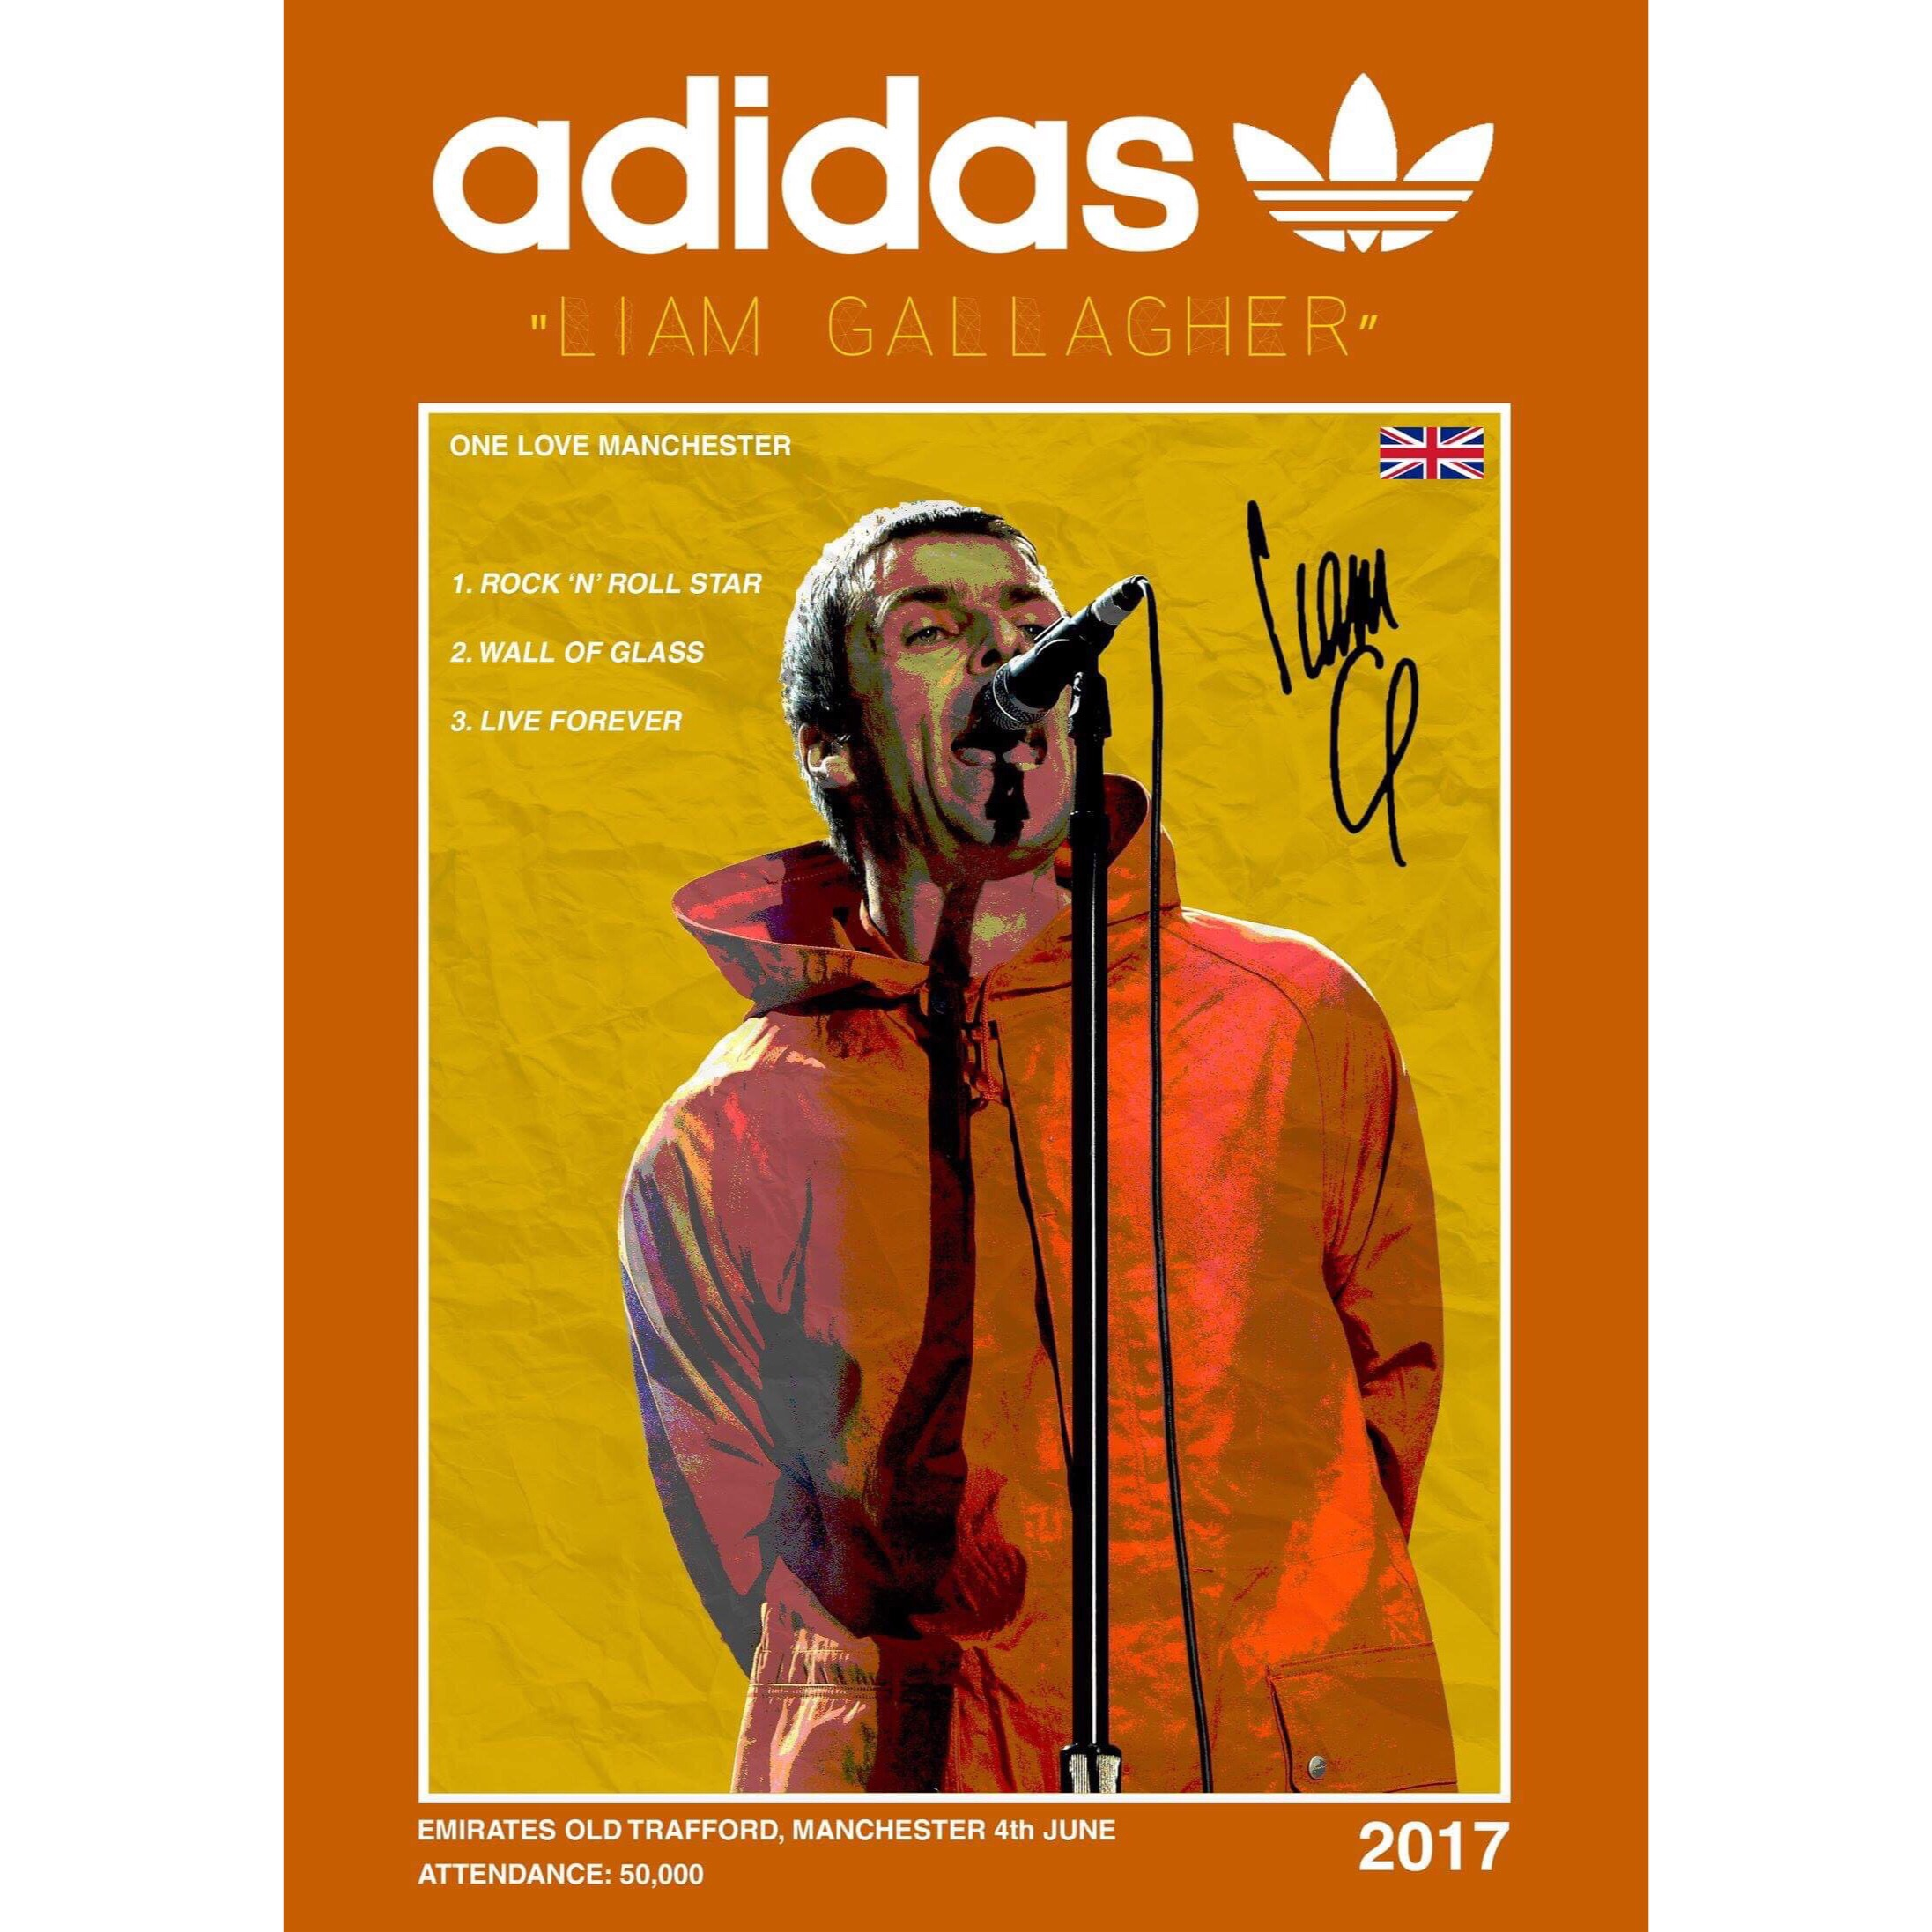 STAR (INTERSPORT) | Adidas one love in 2019 | Adidas, Adidas